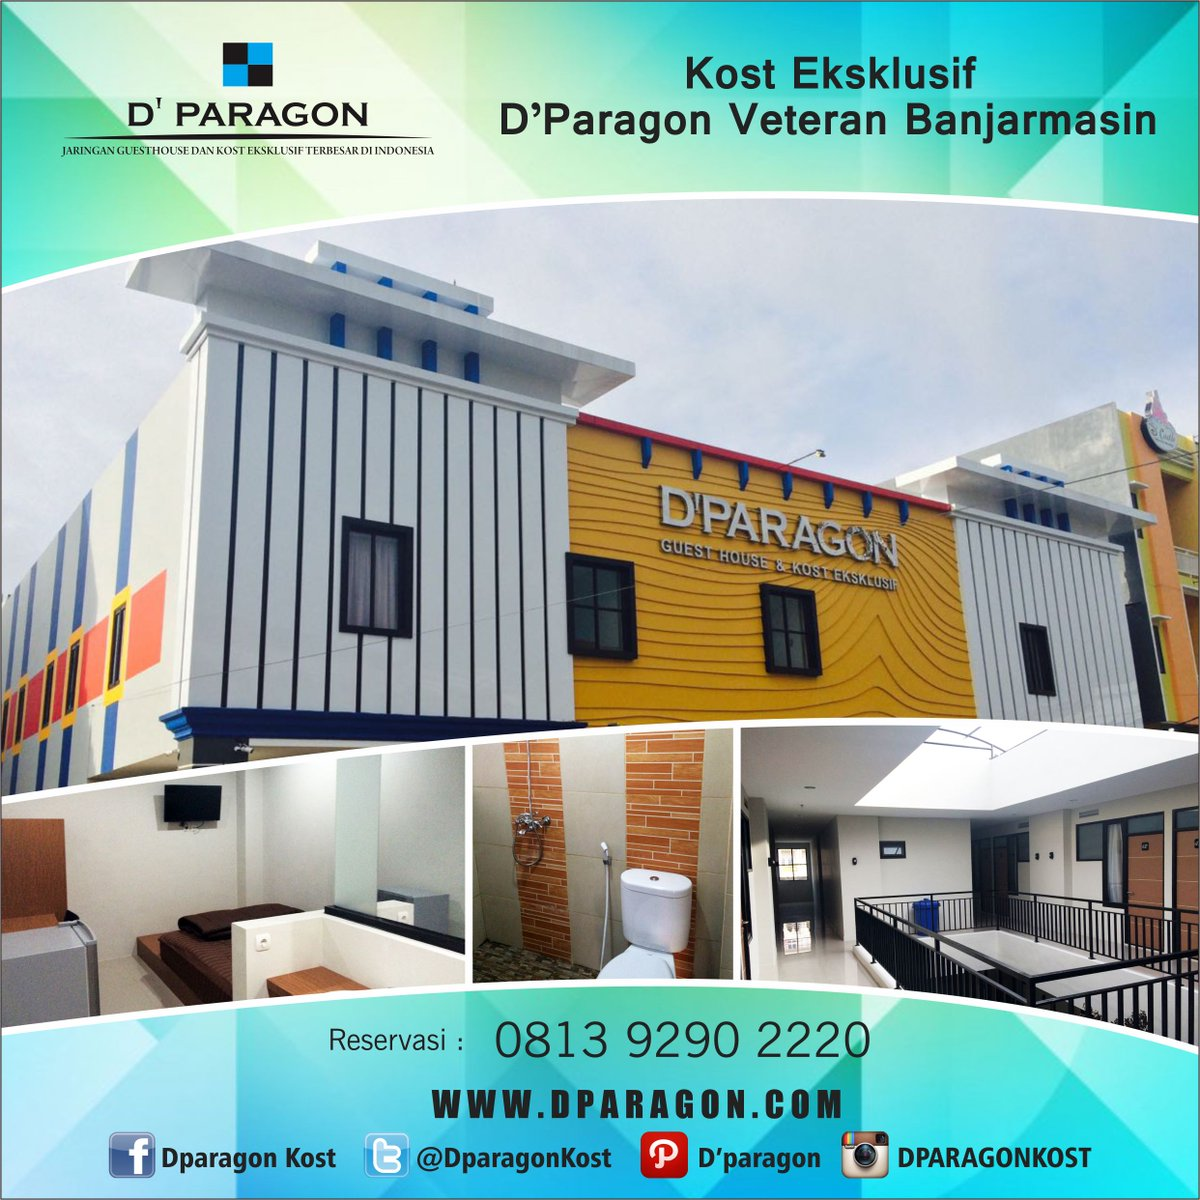 d paragon kost on twitter available room for dparagonkost veteran banjarmasin info booking 081392902220 grab it fast guys https t co opmlzlnktl